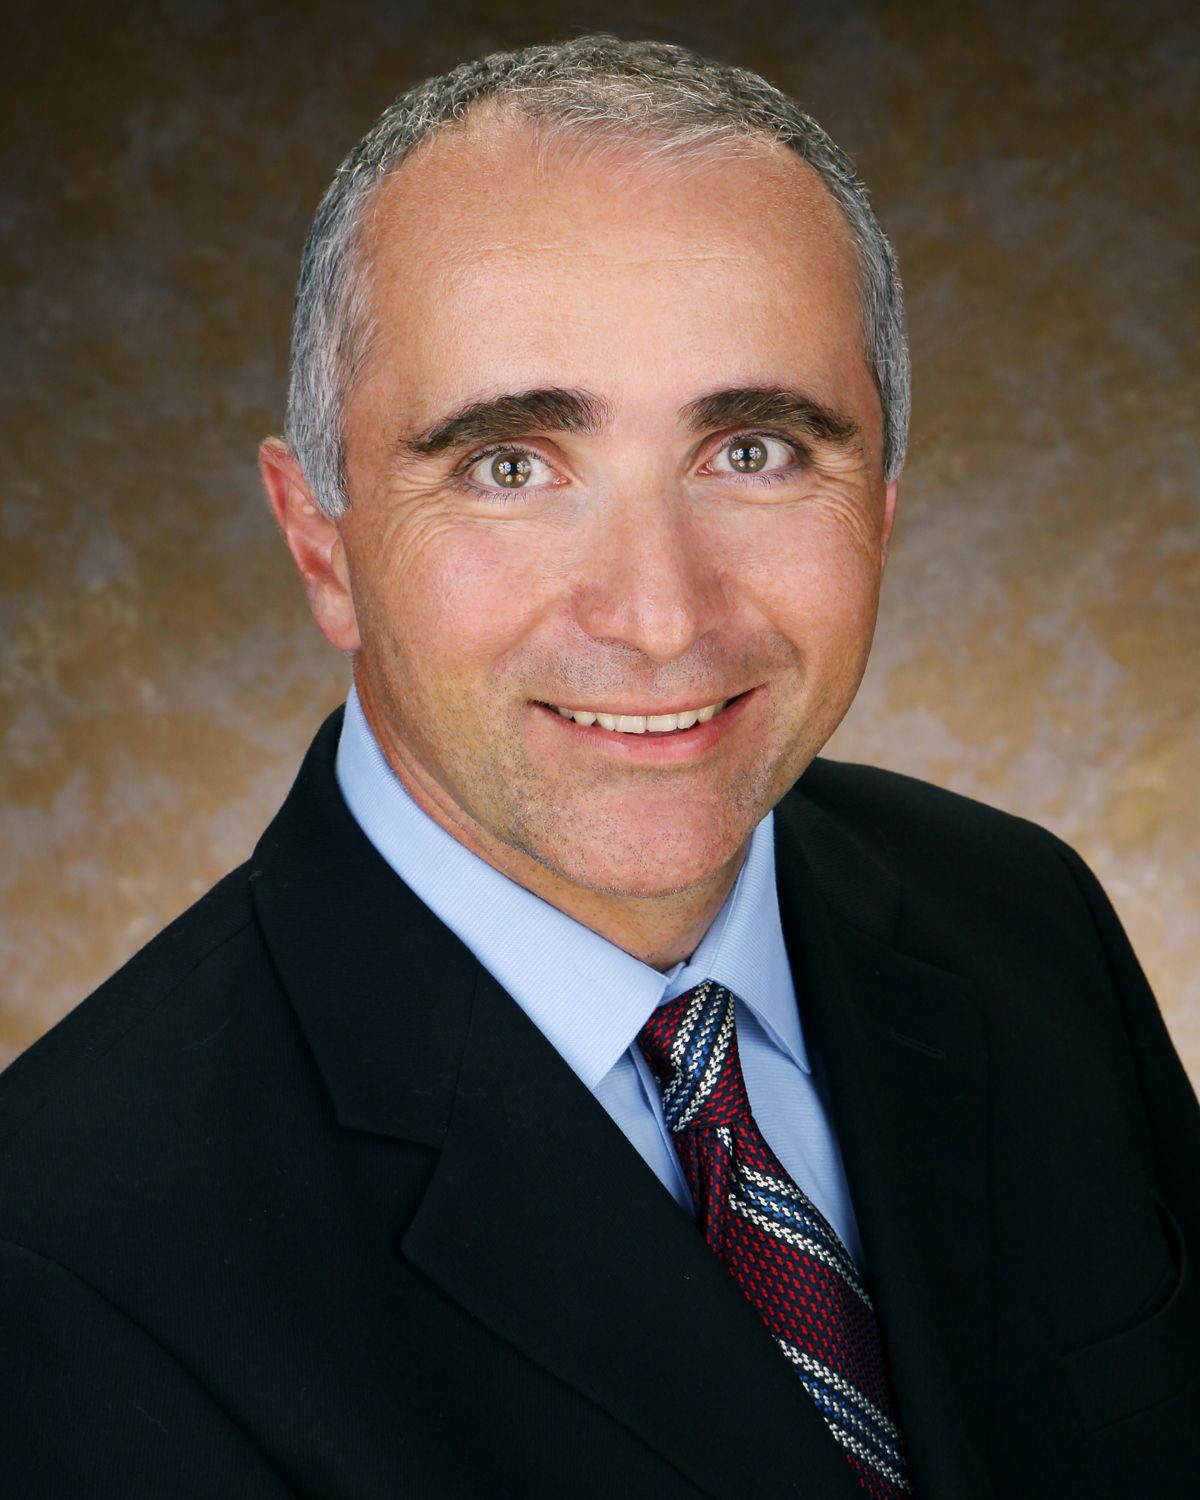 Dr. Armen Katchatryan appointed to Dymicron Board of Directors, Dymicron